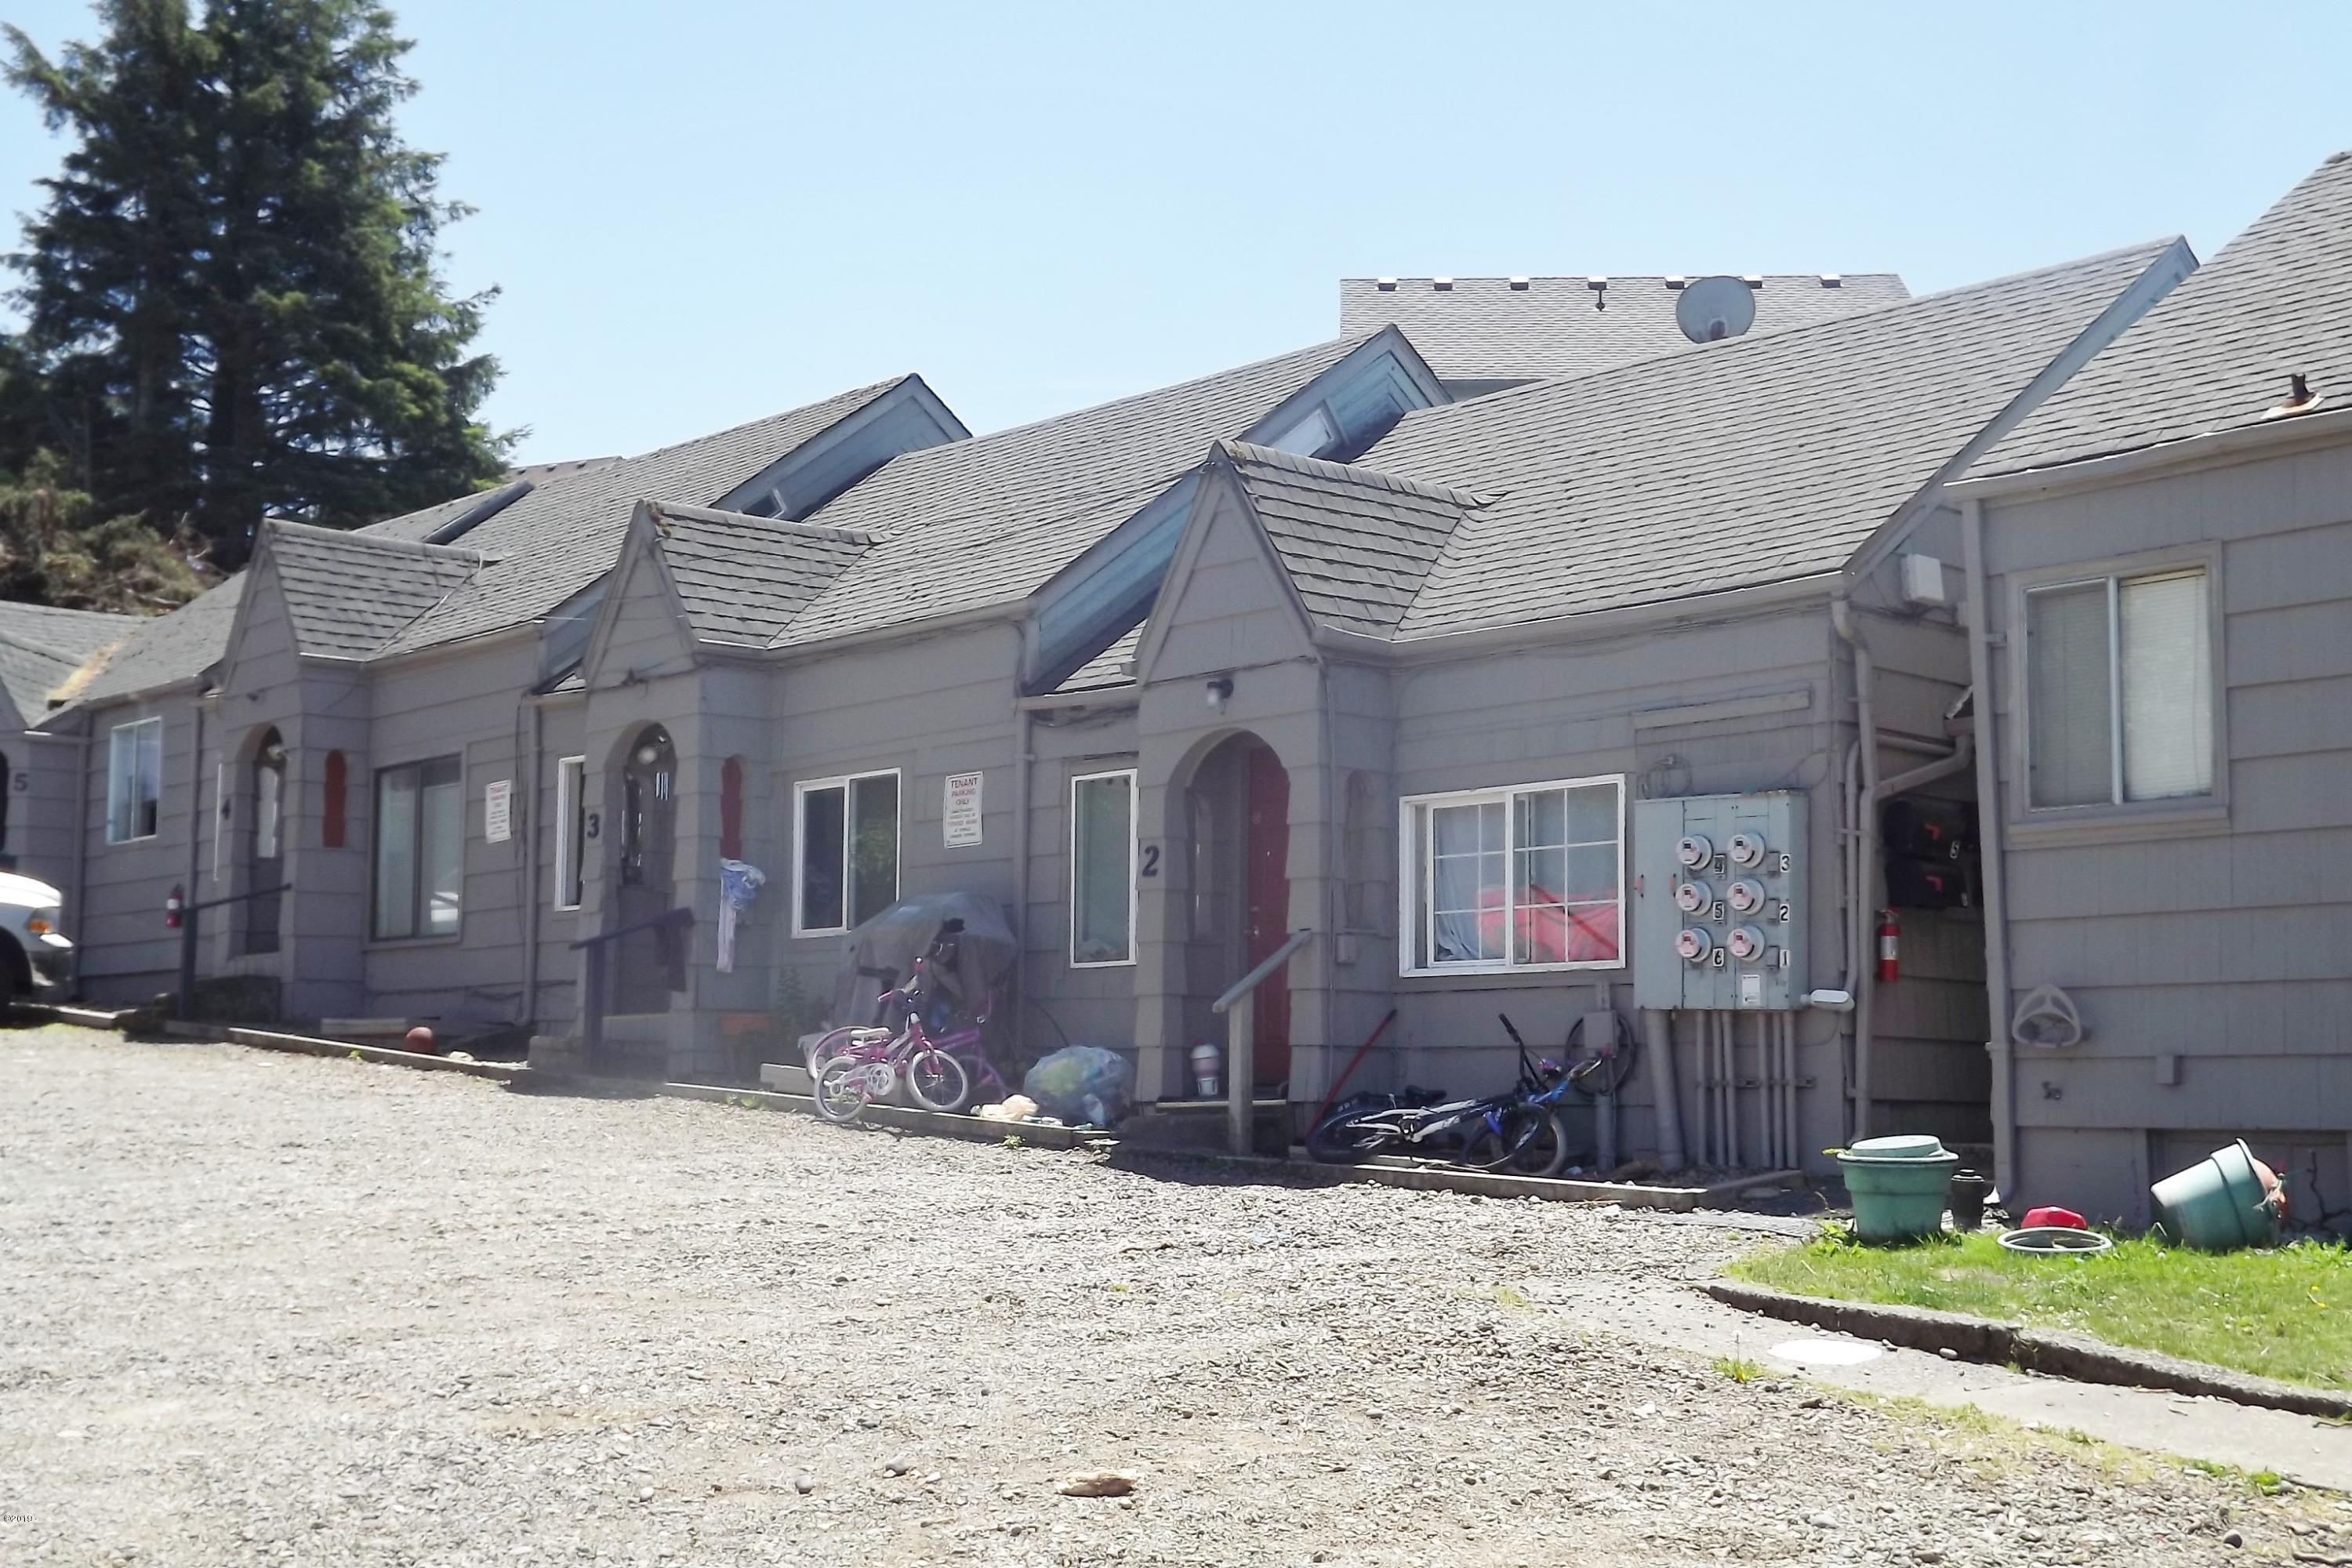 2020 NE Hwy 101, Lincoln City, OR 97367 - From parking lot - Units 2-5